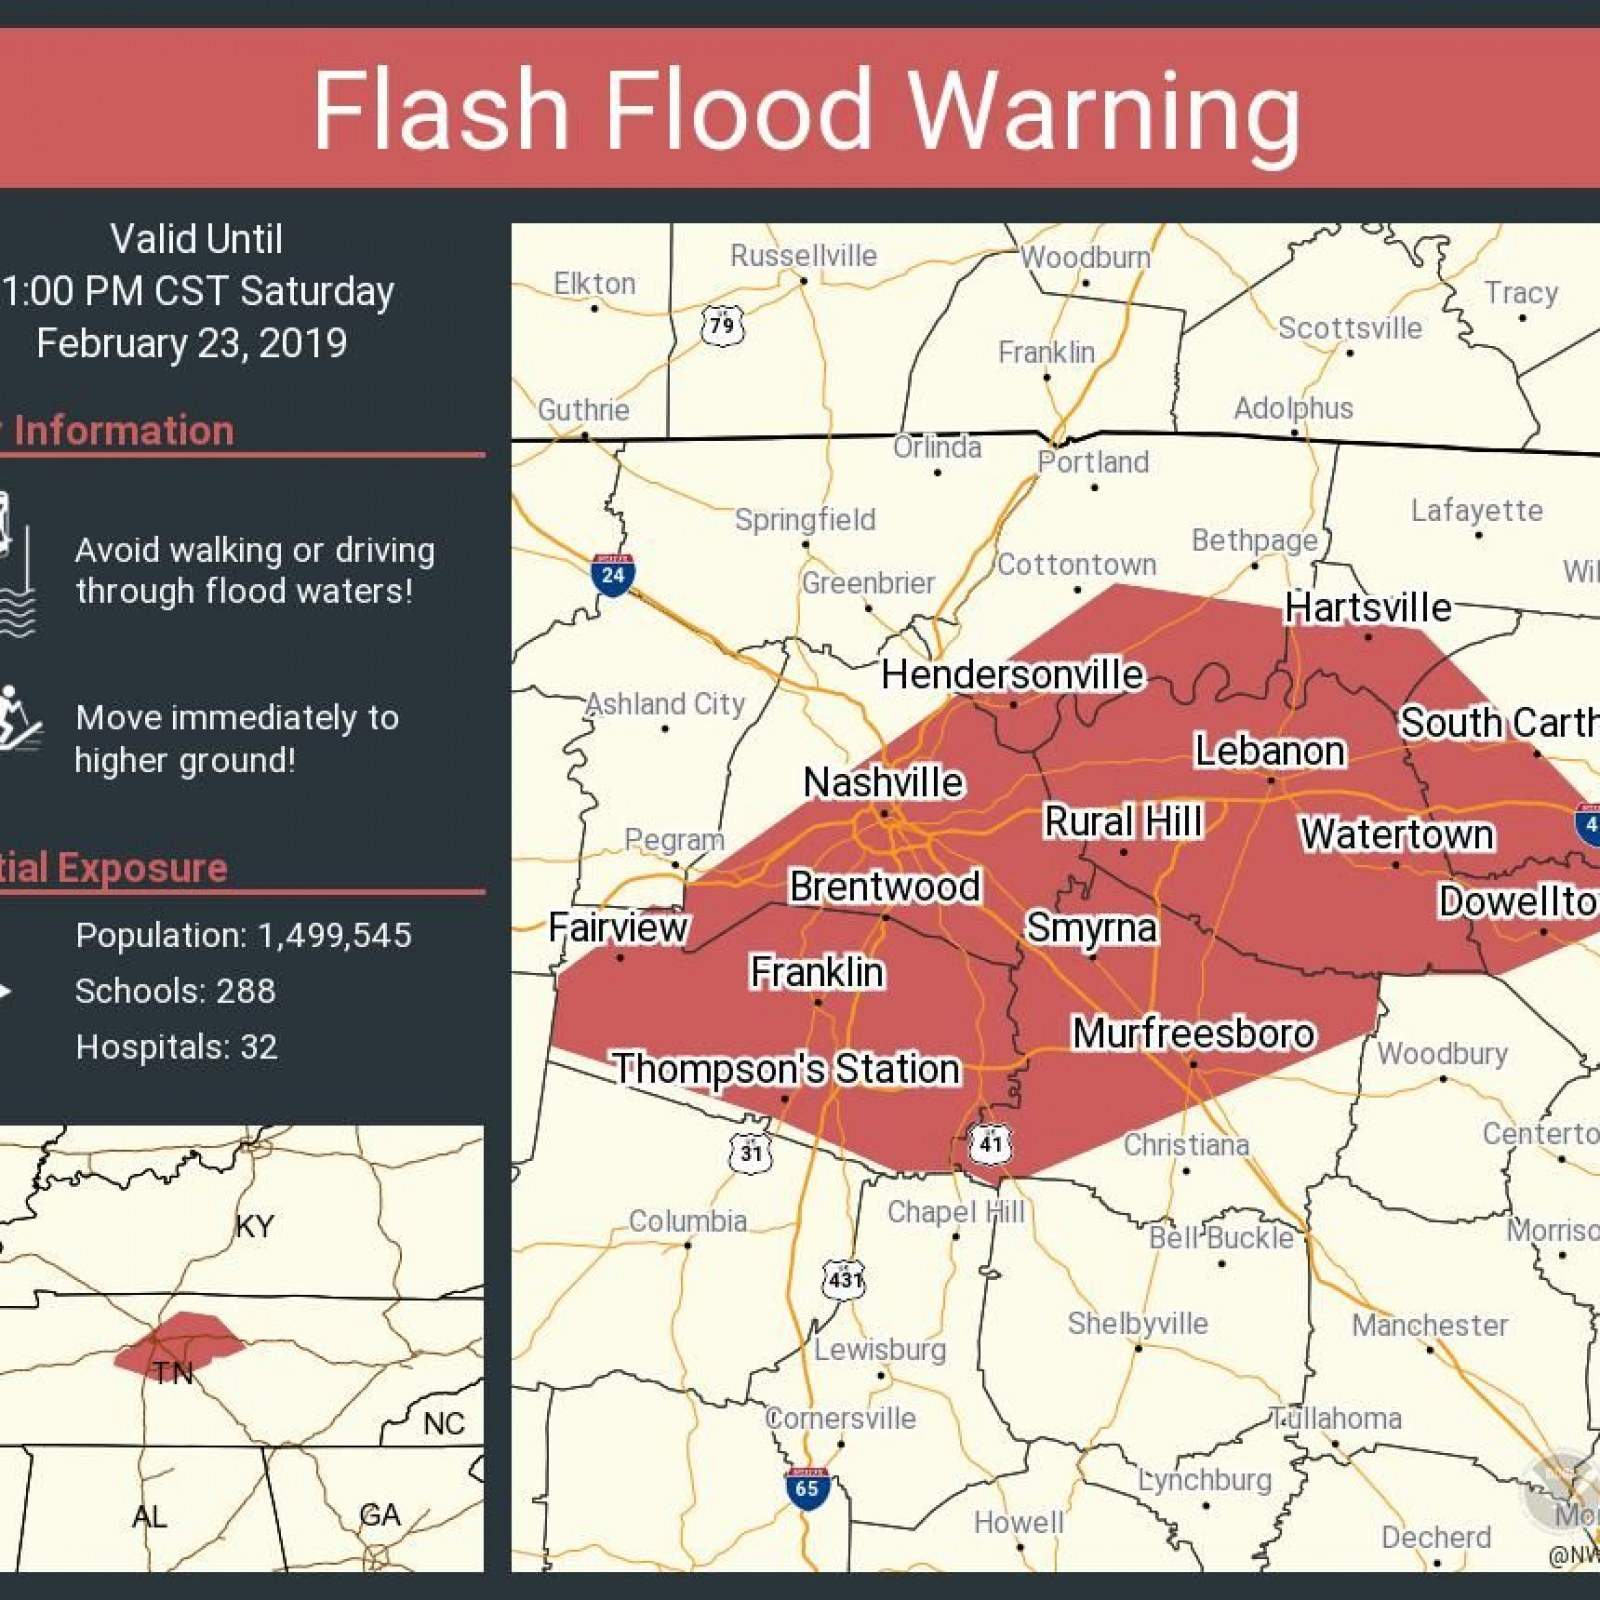 Tennessee Flooding: Flood Map, Photos and Warnings